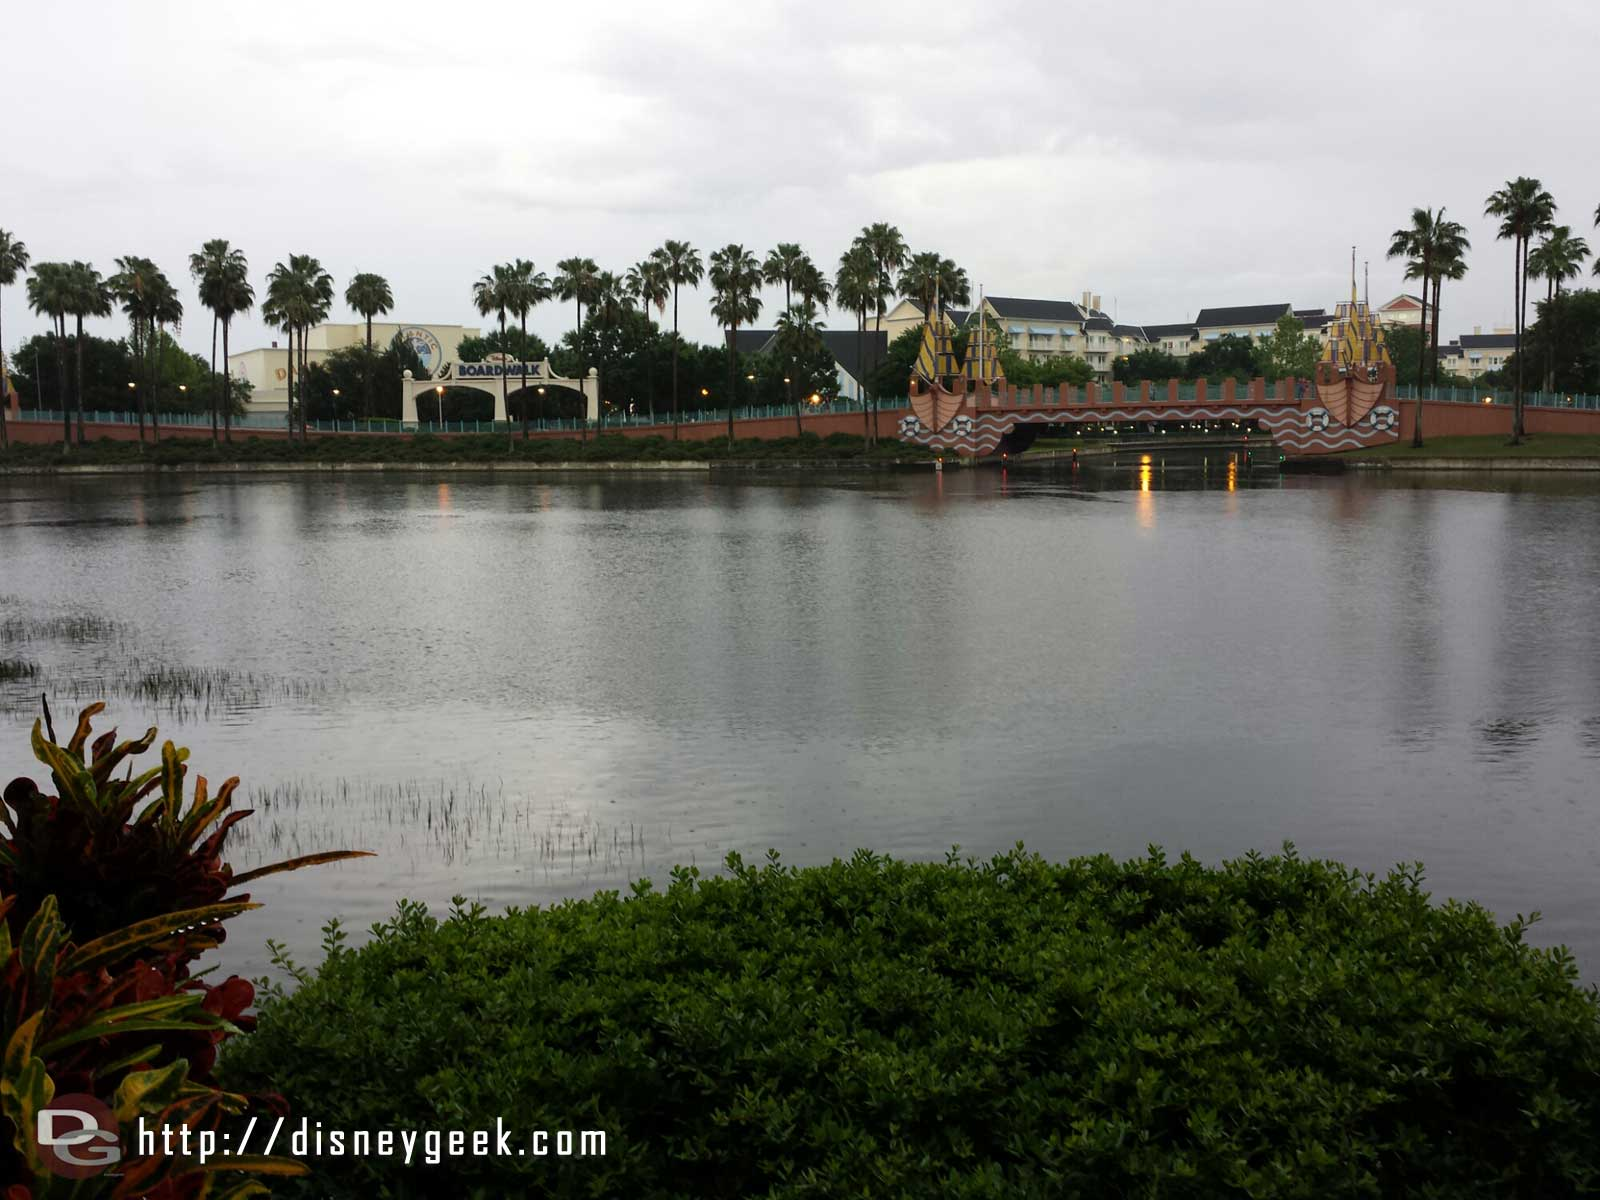 Still raining after dinner…  boats are running to Epcot, Studios are closed already.